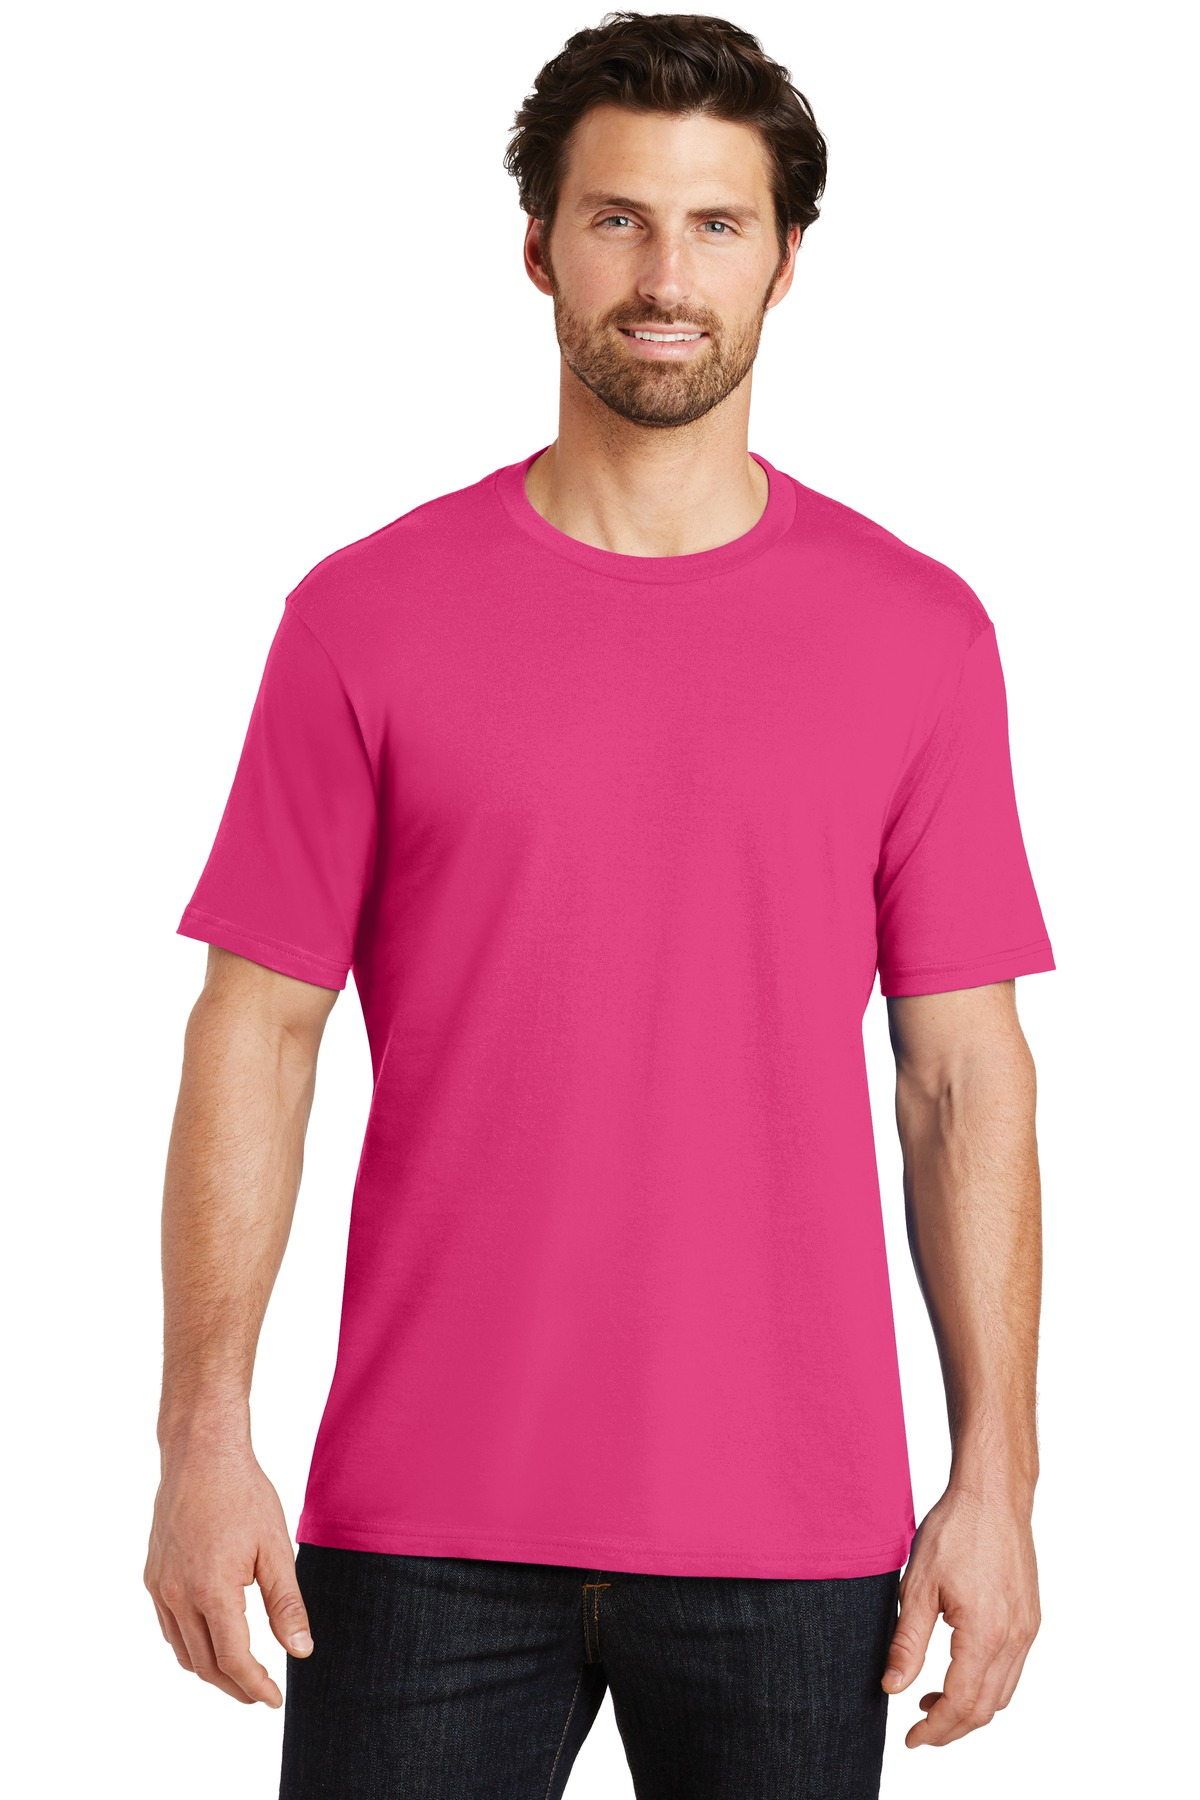 District ®  Perfect Weight ® Tee. DT104 - Dark Fuchsia